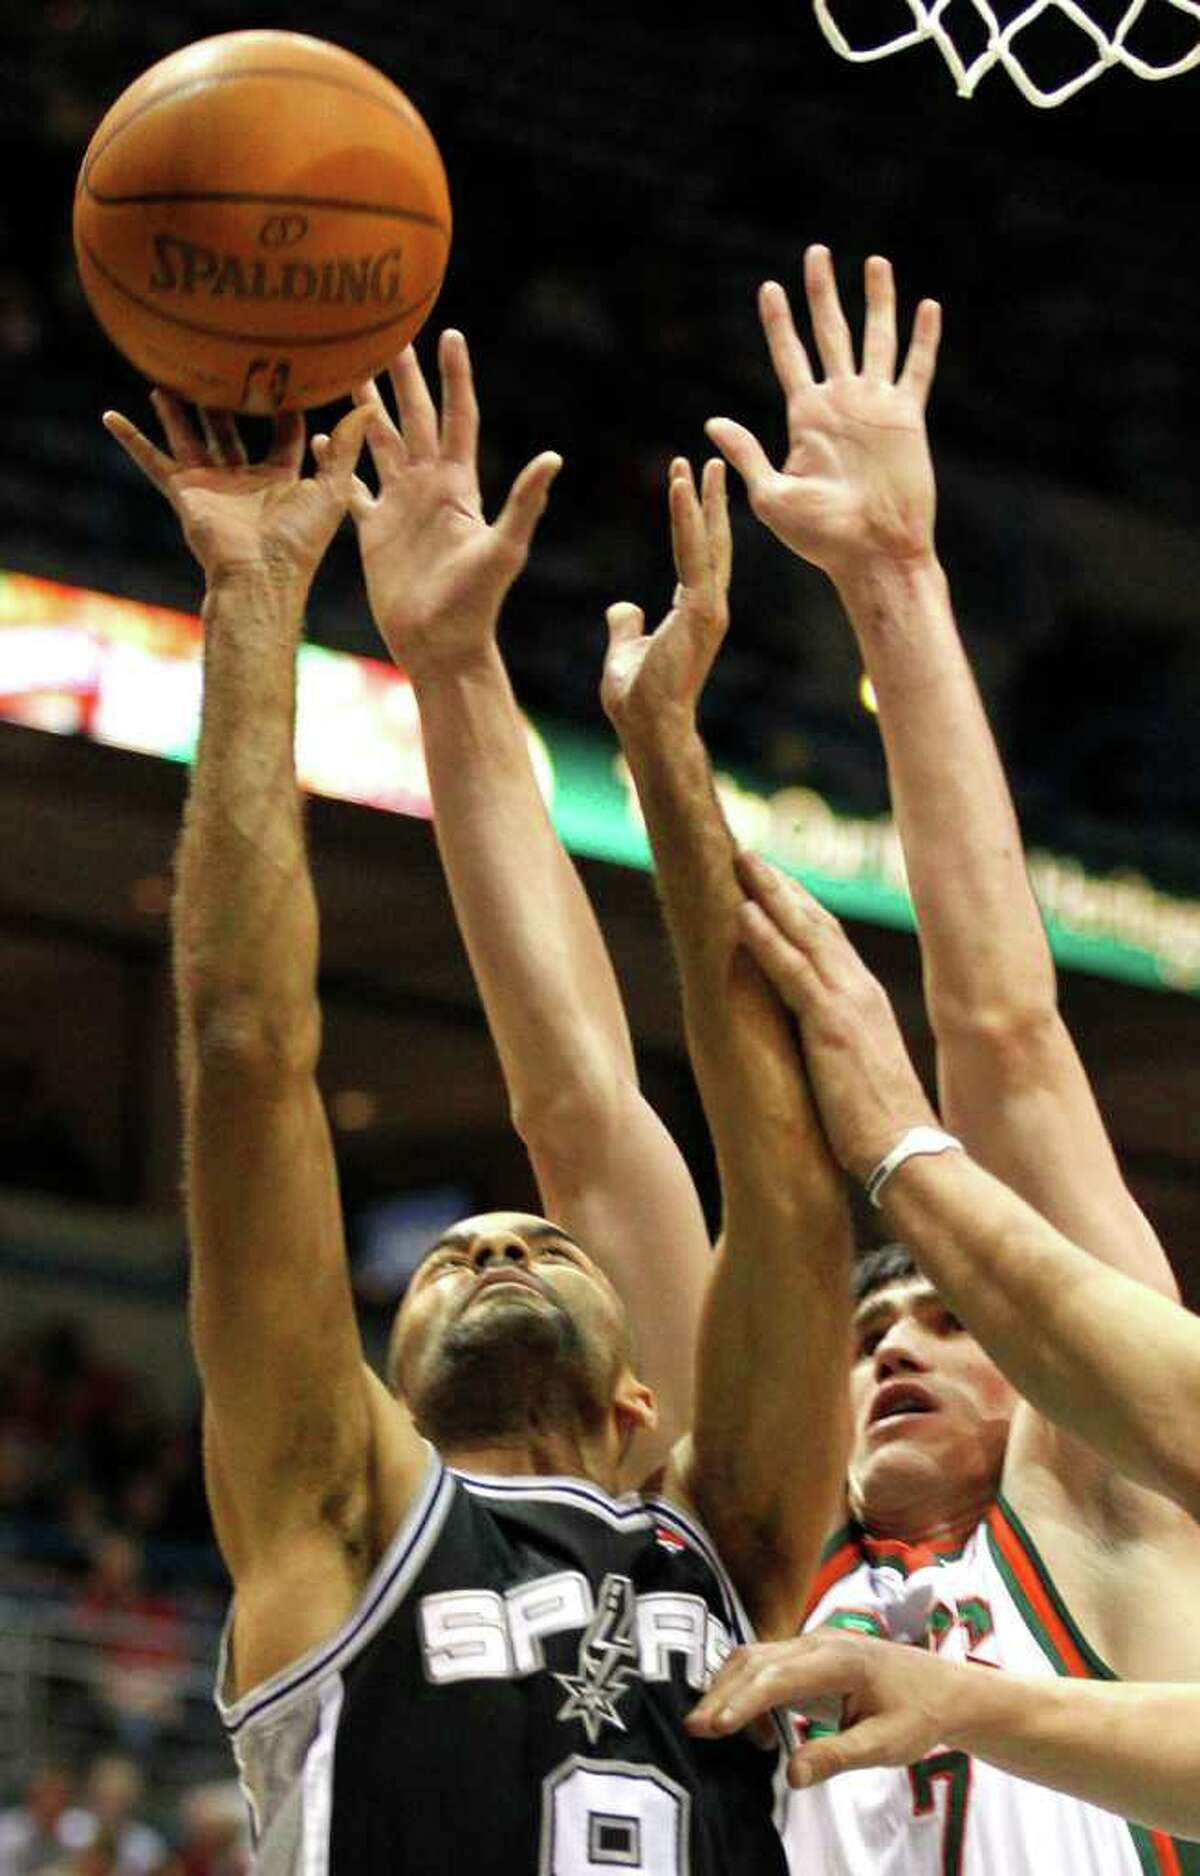 San Antonio Spurs' Tony Parker, left, puts up a shot against Milwaukee Bucks' Ersan Ilyasova in the first half of an NBA basketball game Wednesday, Jan. 12, 2011, in Milwaukee.